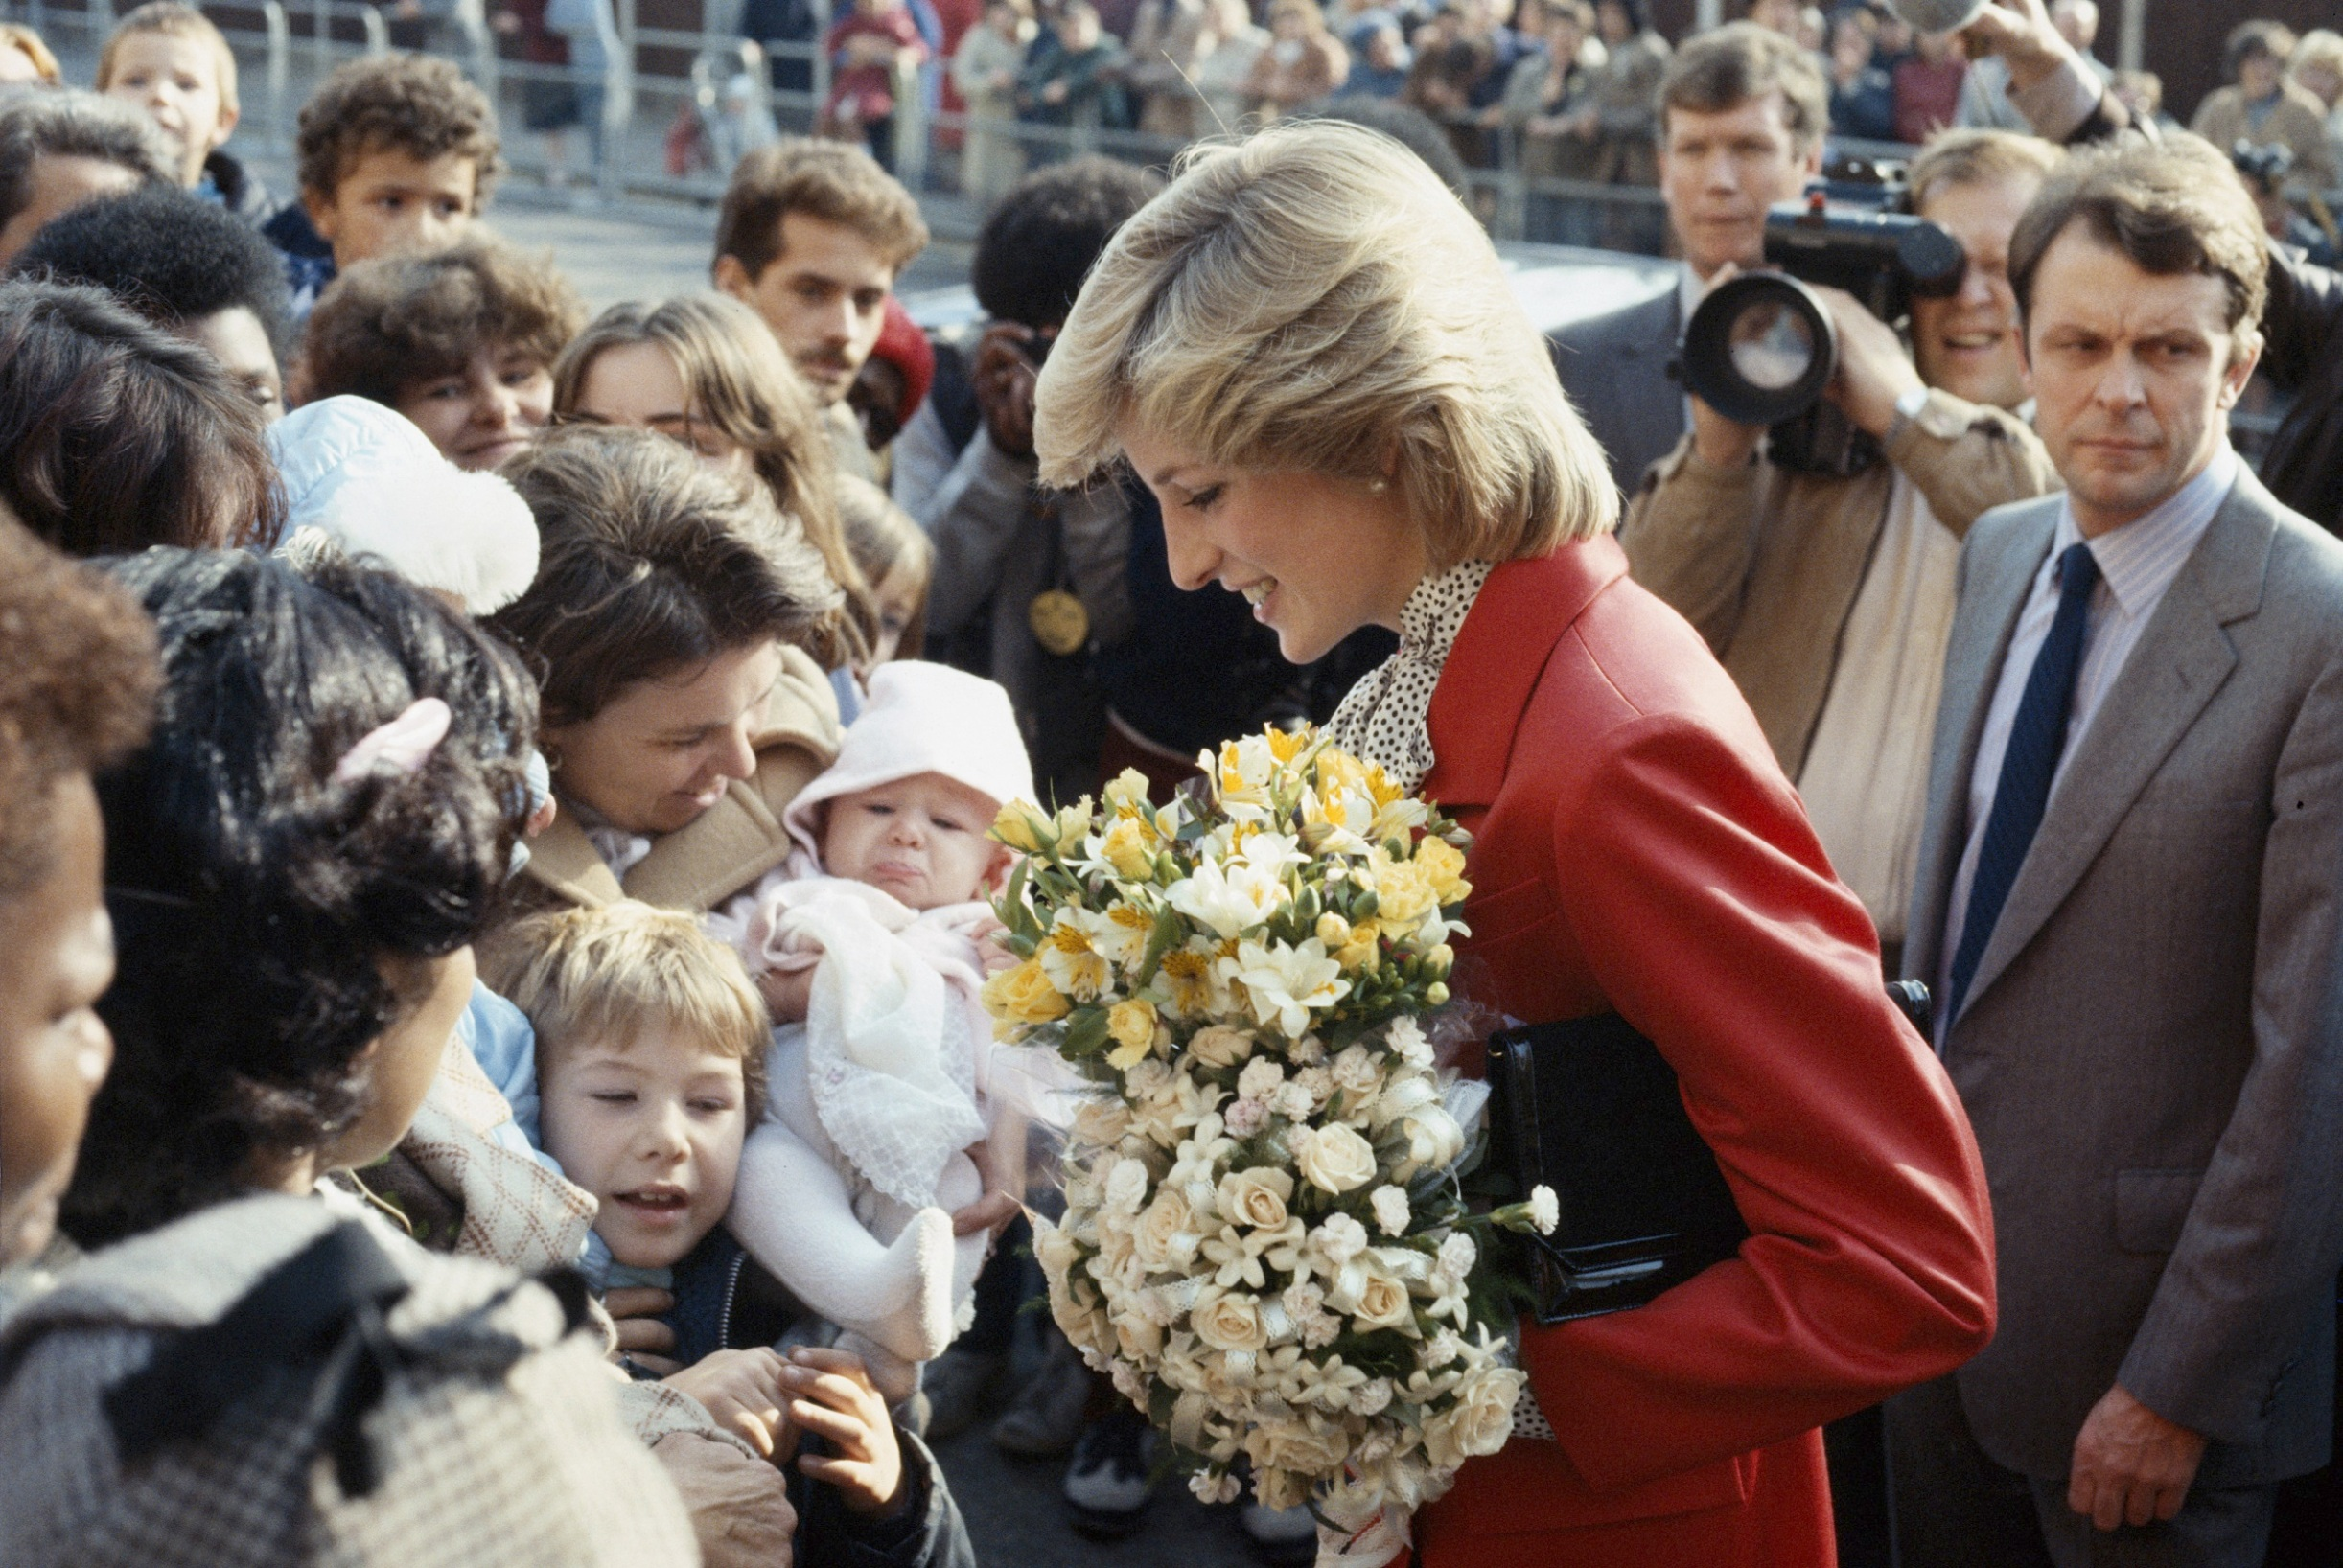 Princess Diana wearing a Jasper Conran suit during a visit to a community centre in Brixton, October 1983. (Photo by Princess Diana Archive/Getty Images)